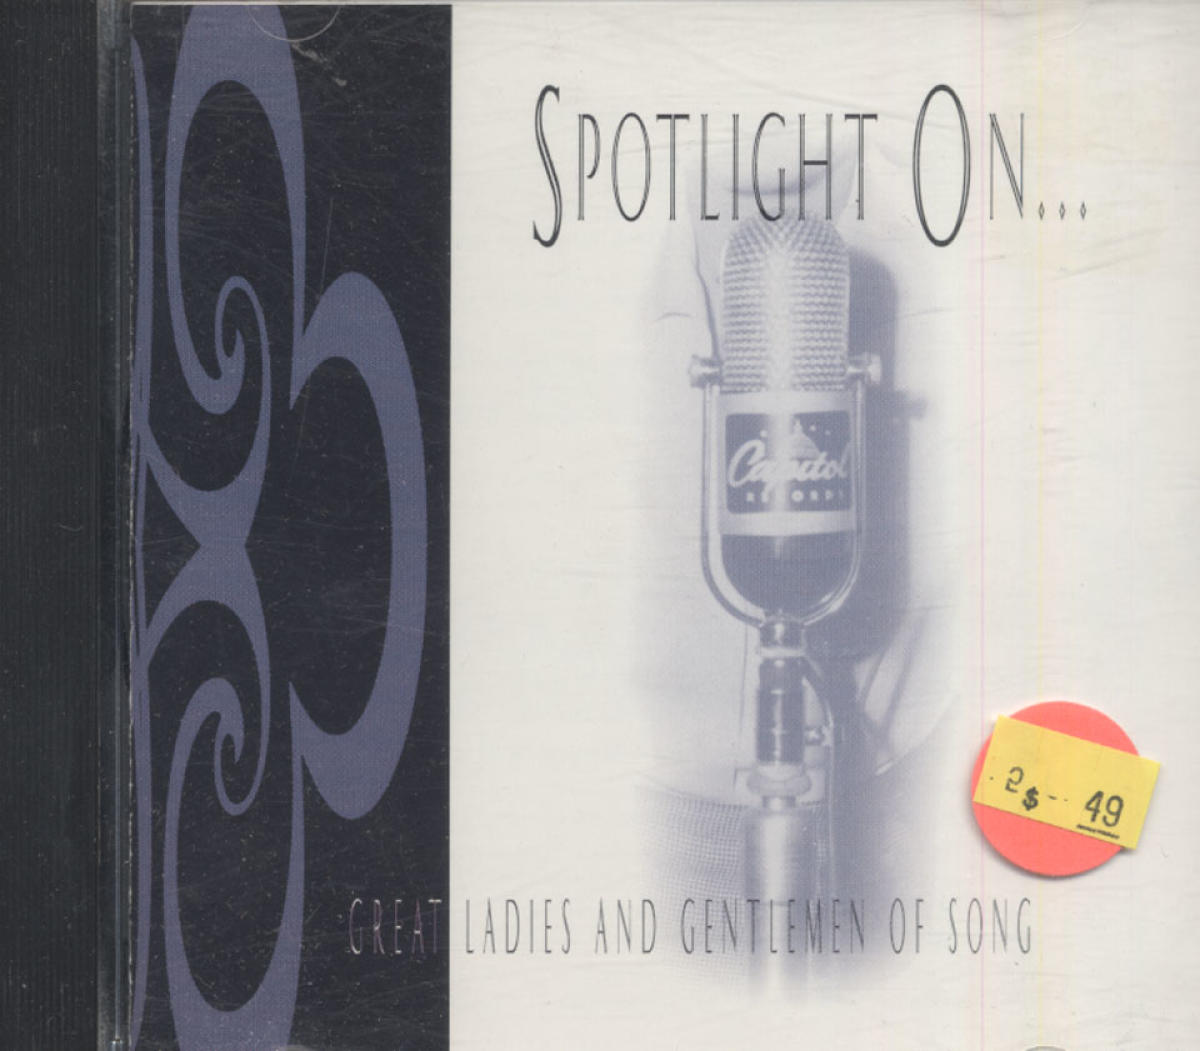 Spotlight On   Great Ladies and Gentlemen of Song CD, 1995 at Wolfgang's